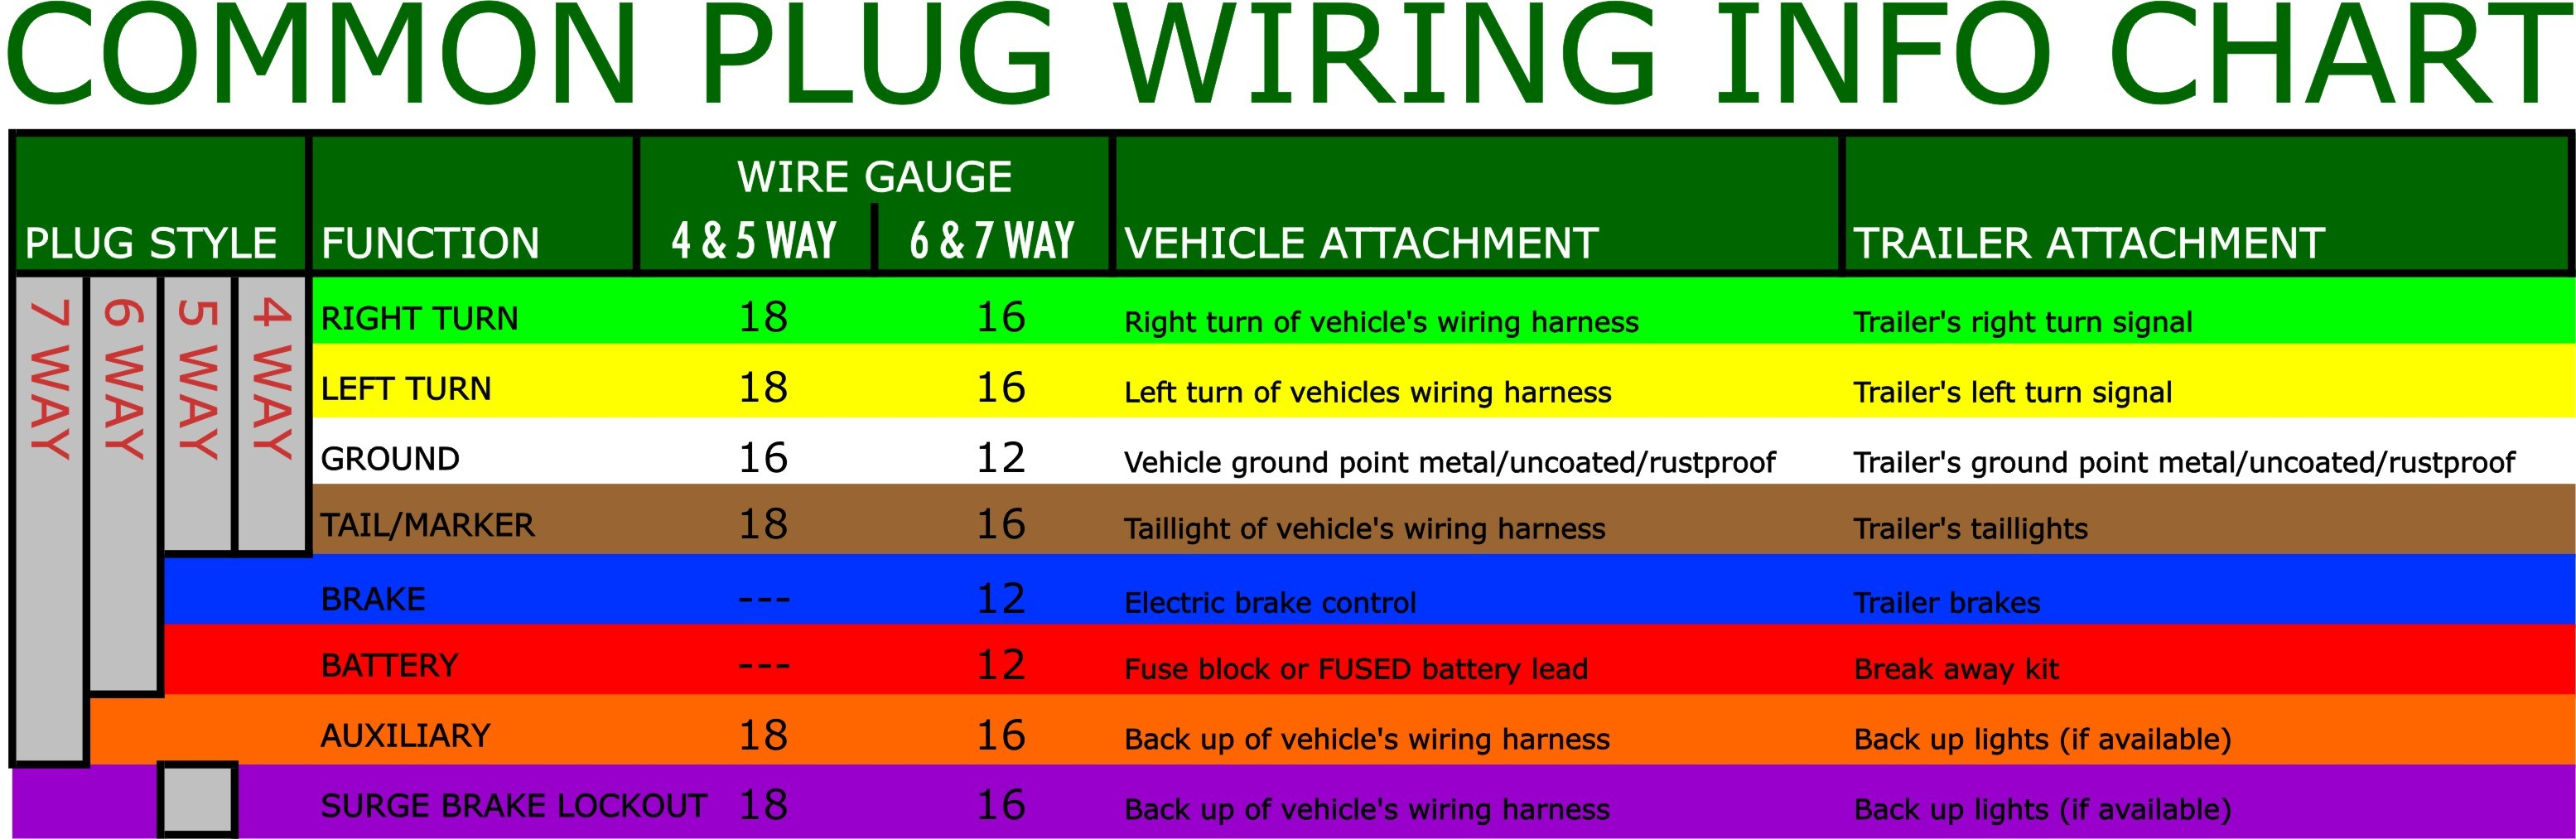 7 Way Trailer Plug Wiring Diagram Gmc Best Of | Wiring Diagram Image